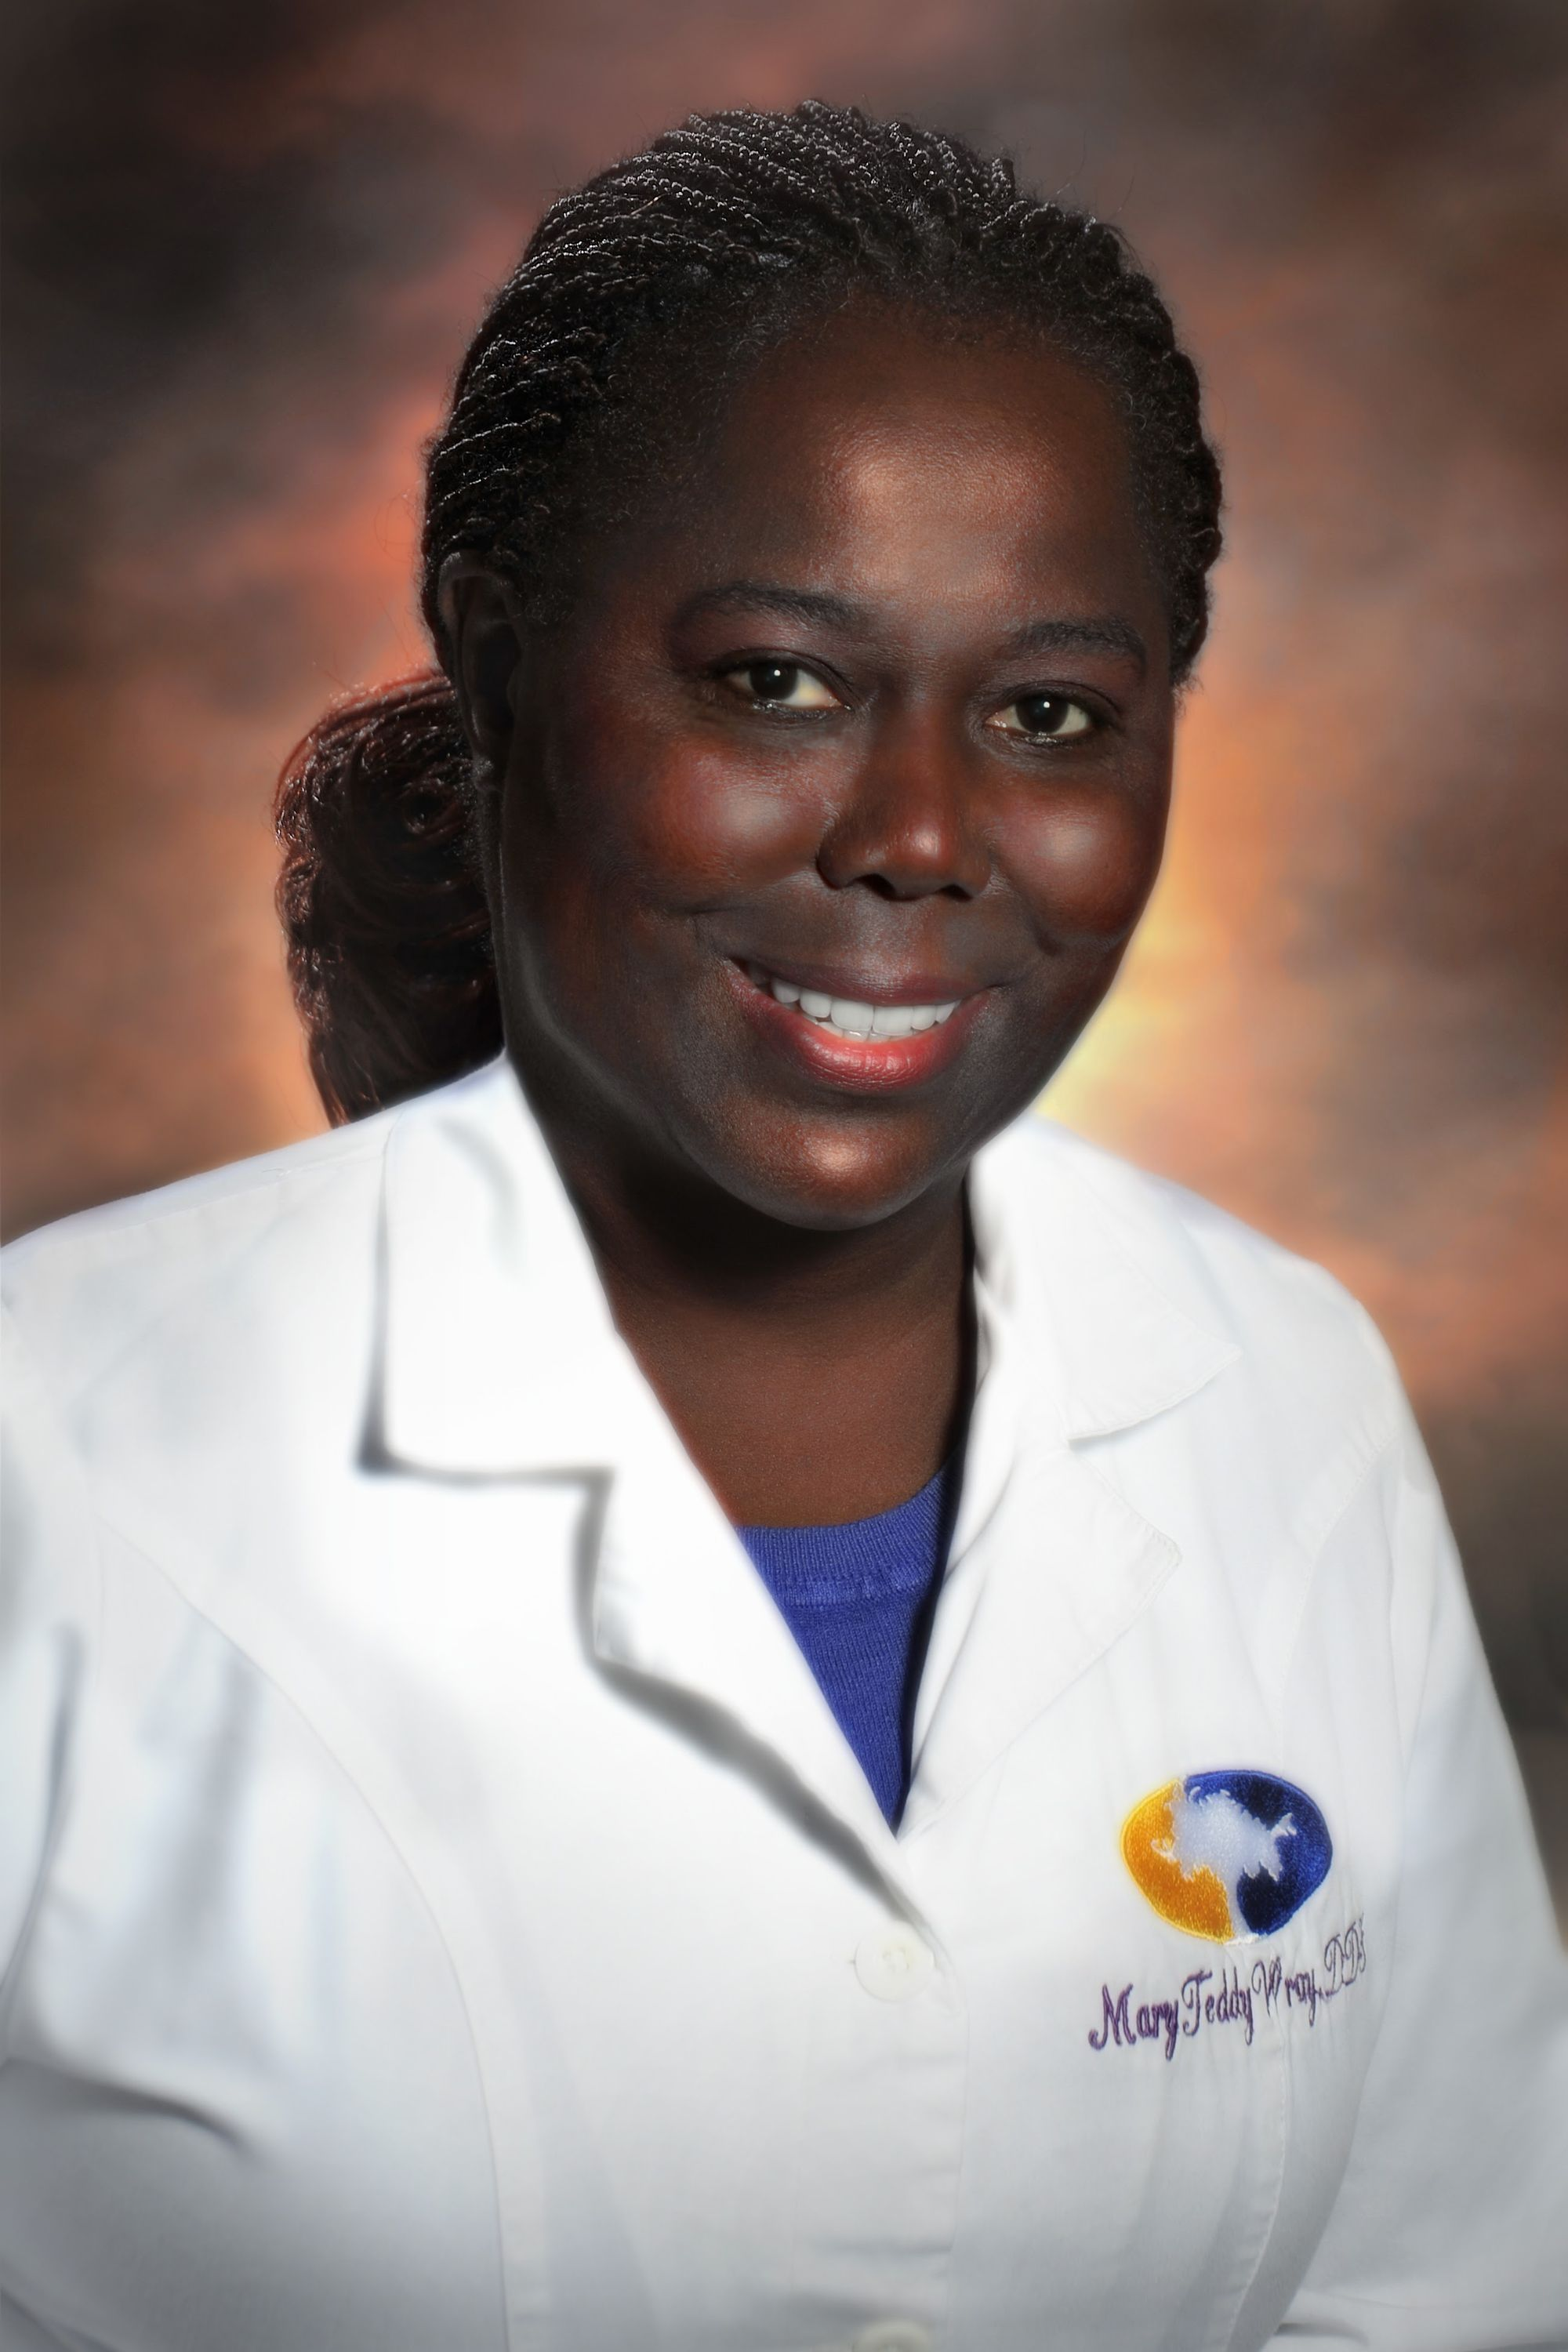 Dr. Mary Teddy Wray Owner & CEO